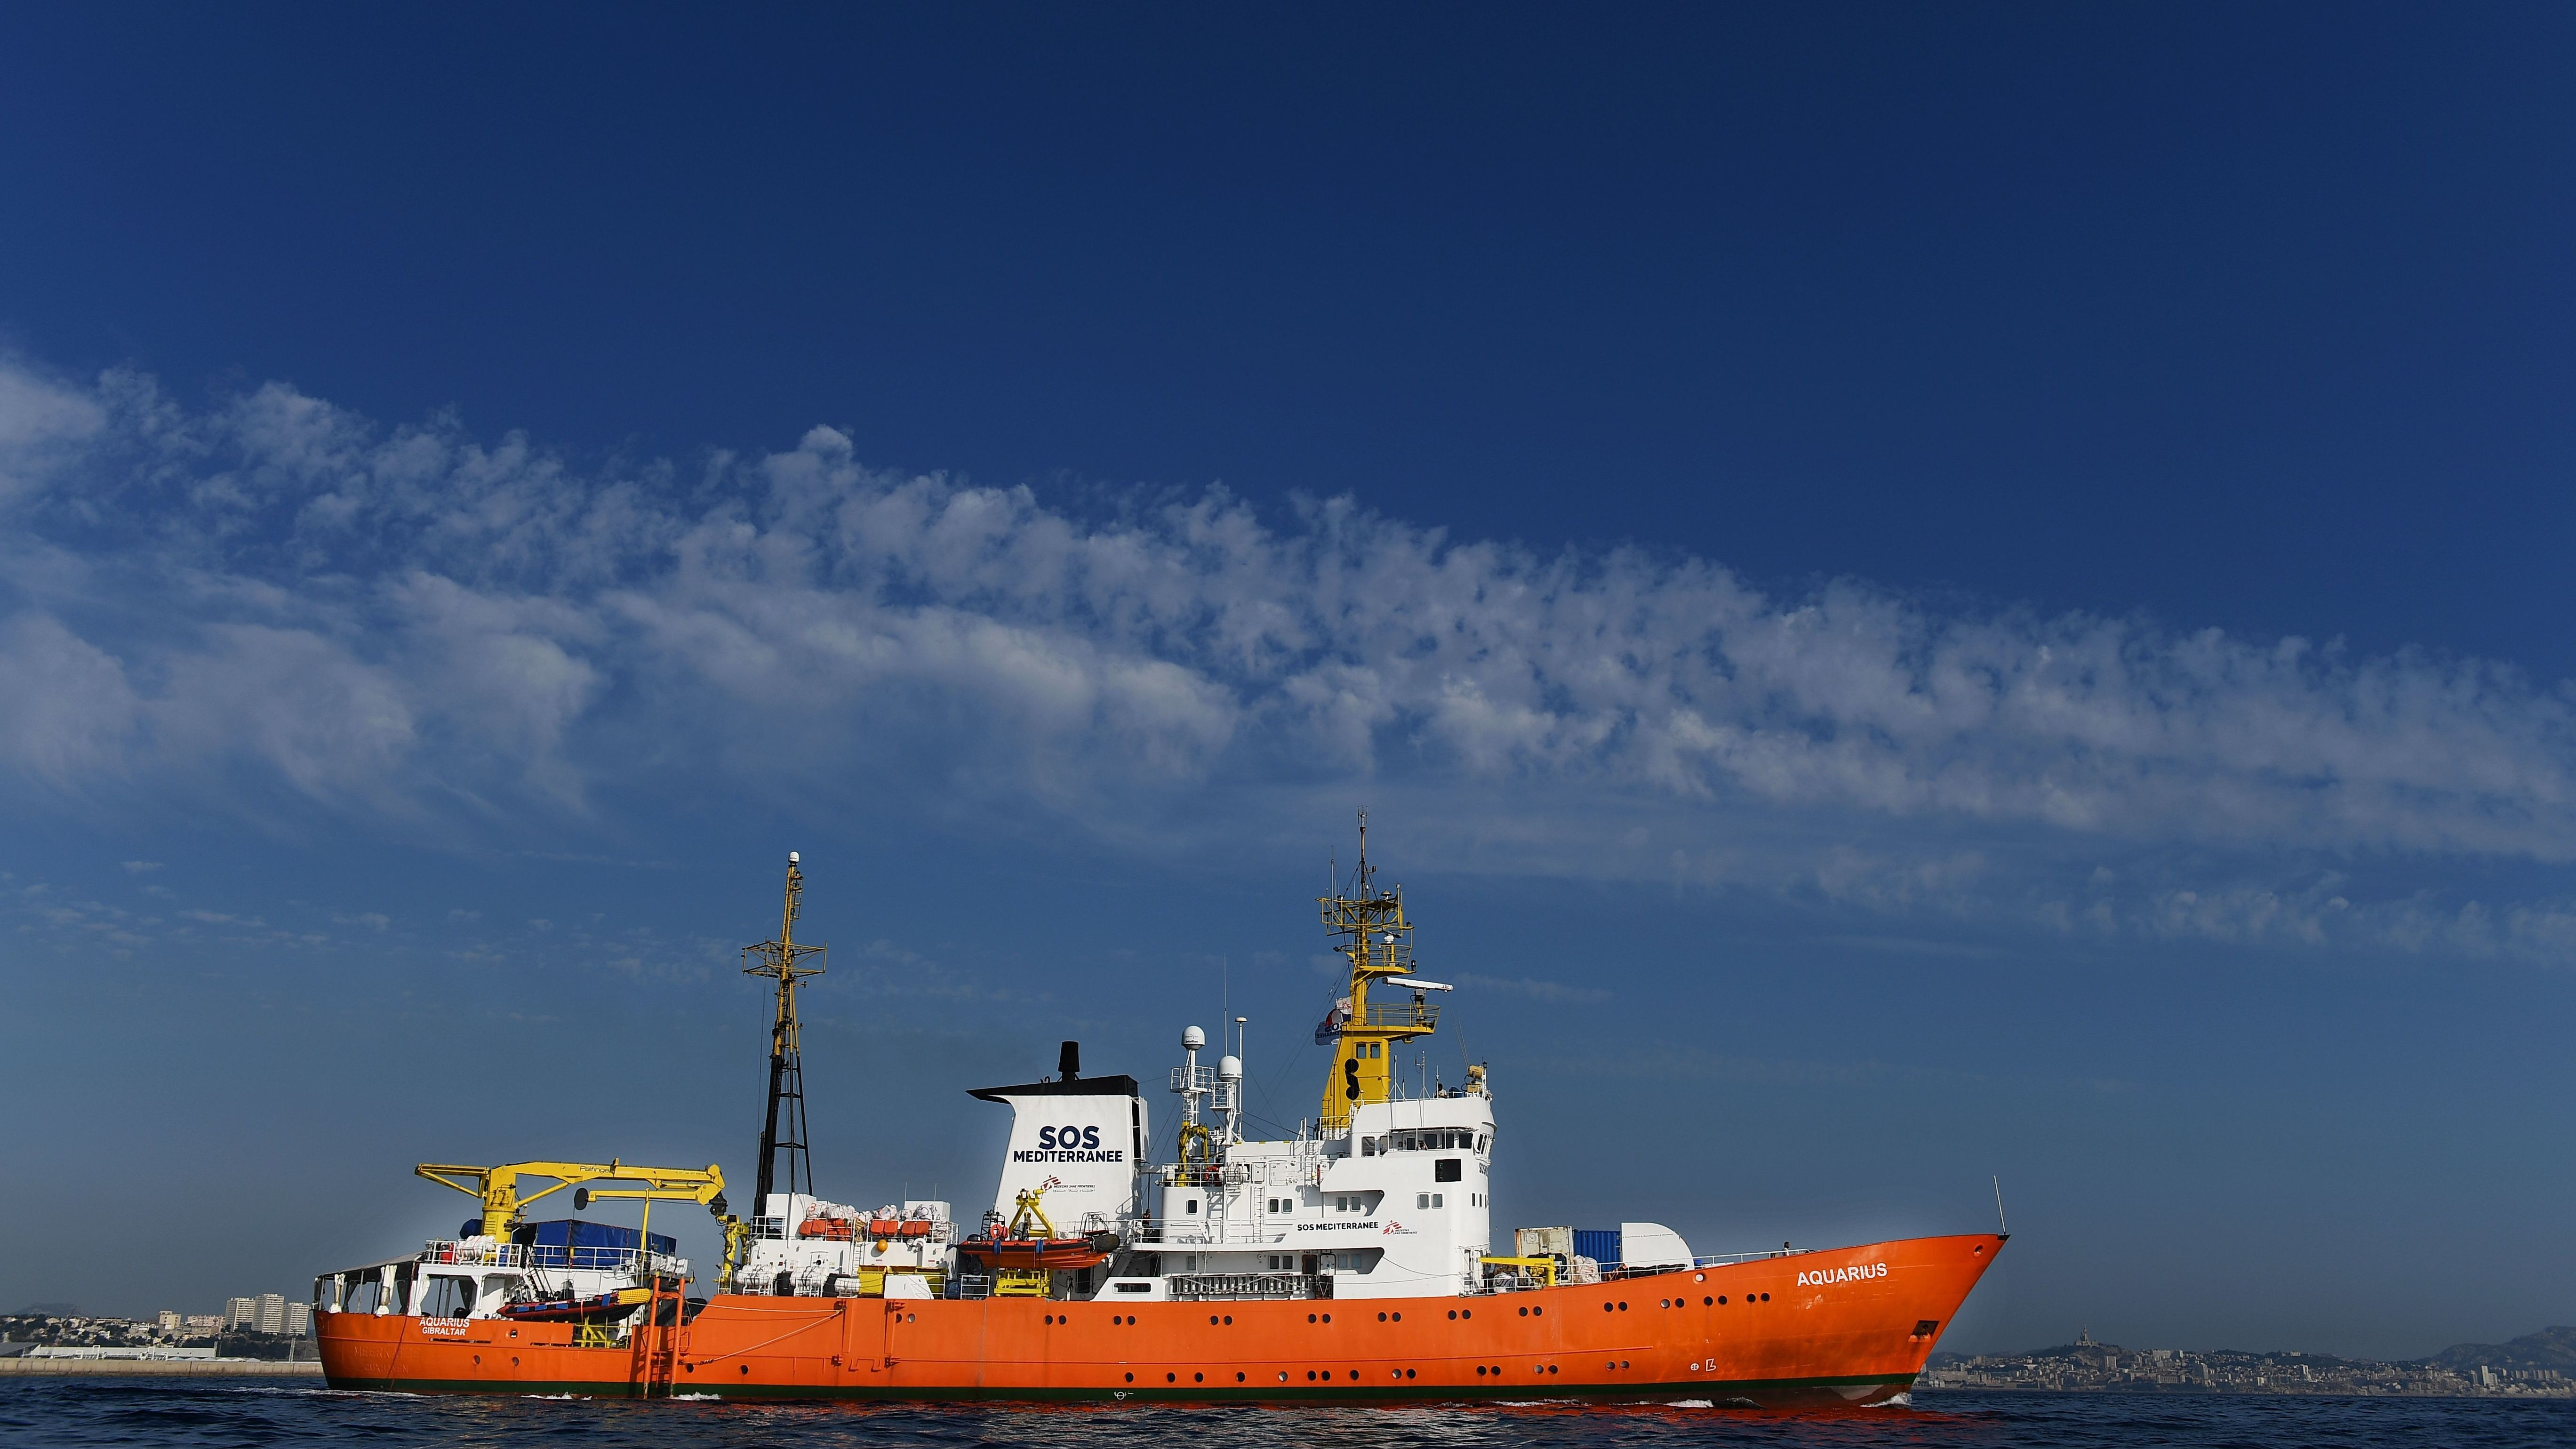 Italy Wants Rescue Ship Seized, Accuses Doctors Without Borders Of Illegal Dumping